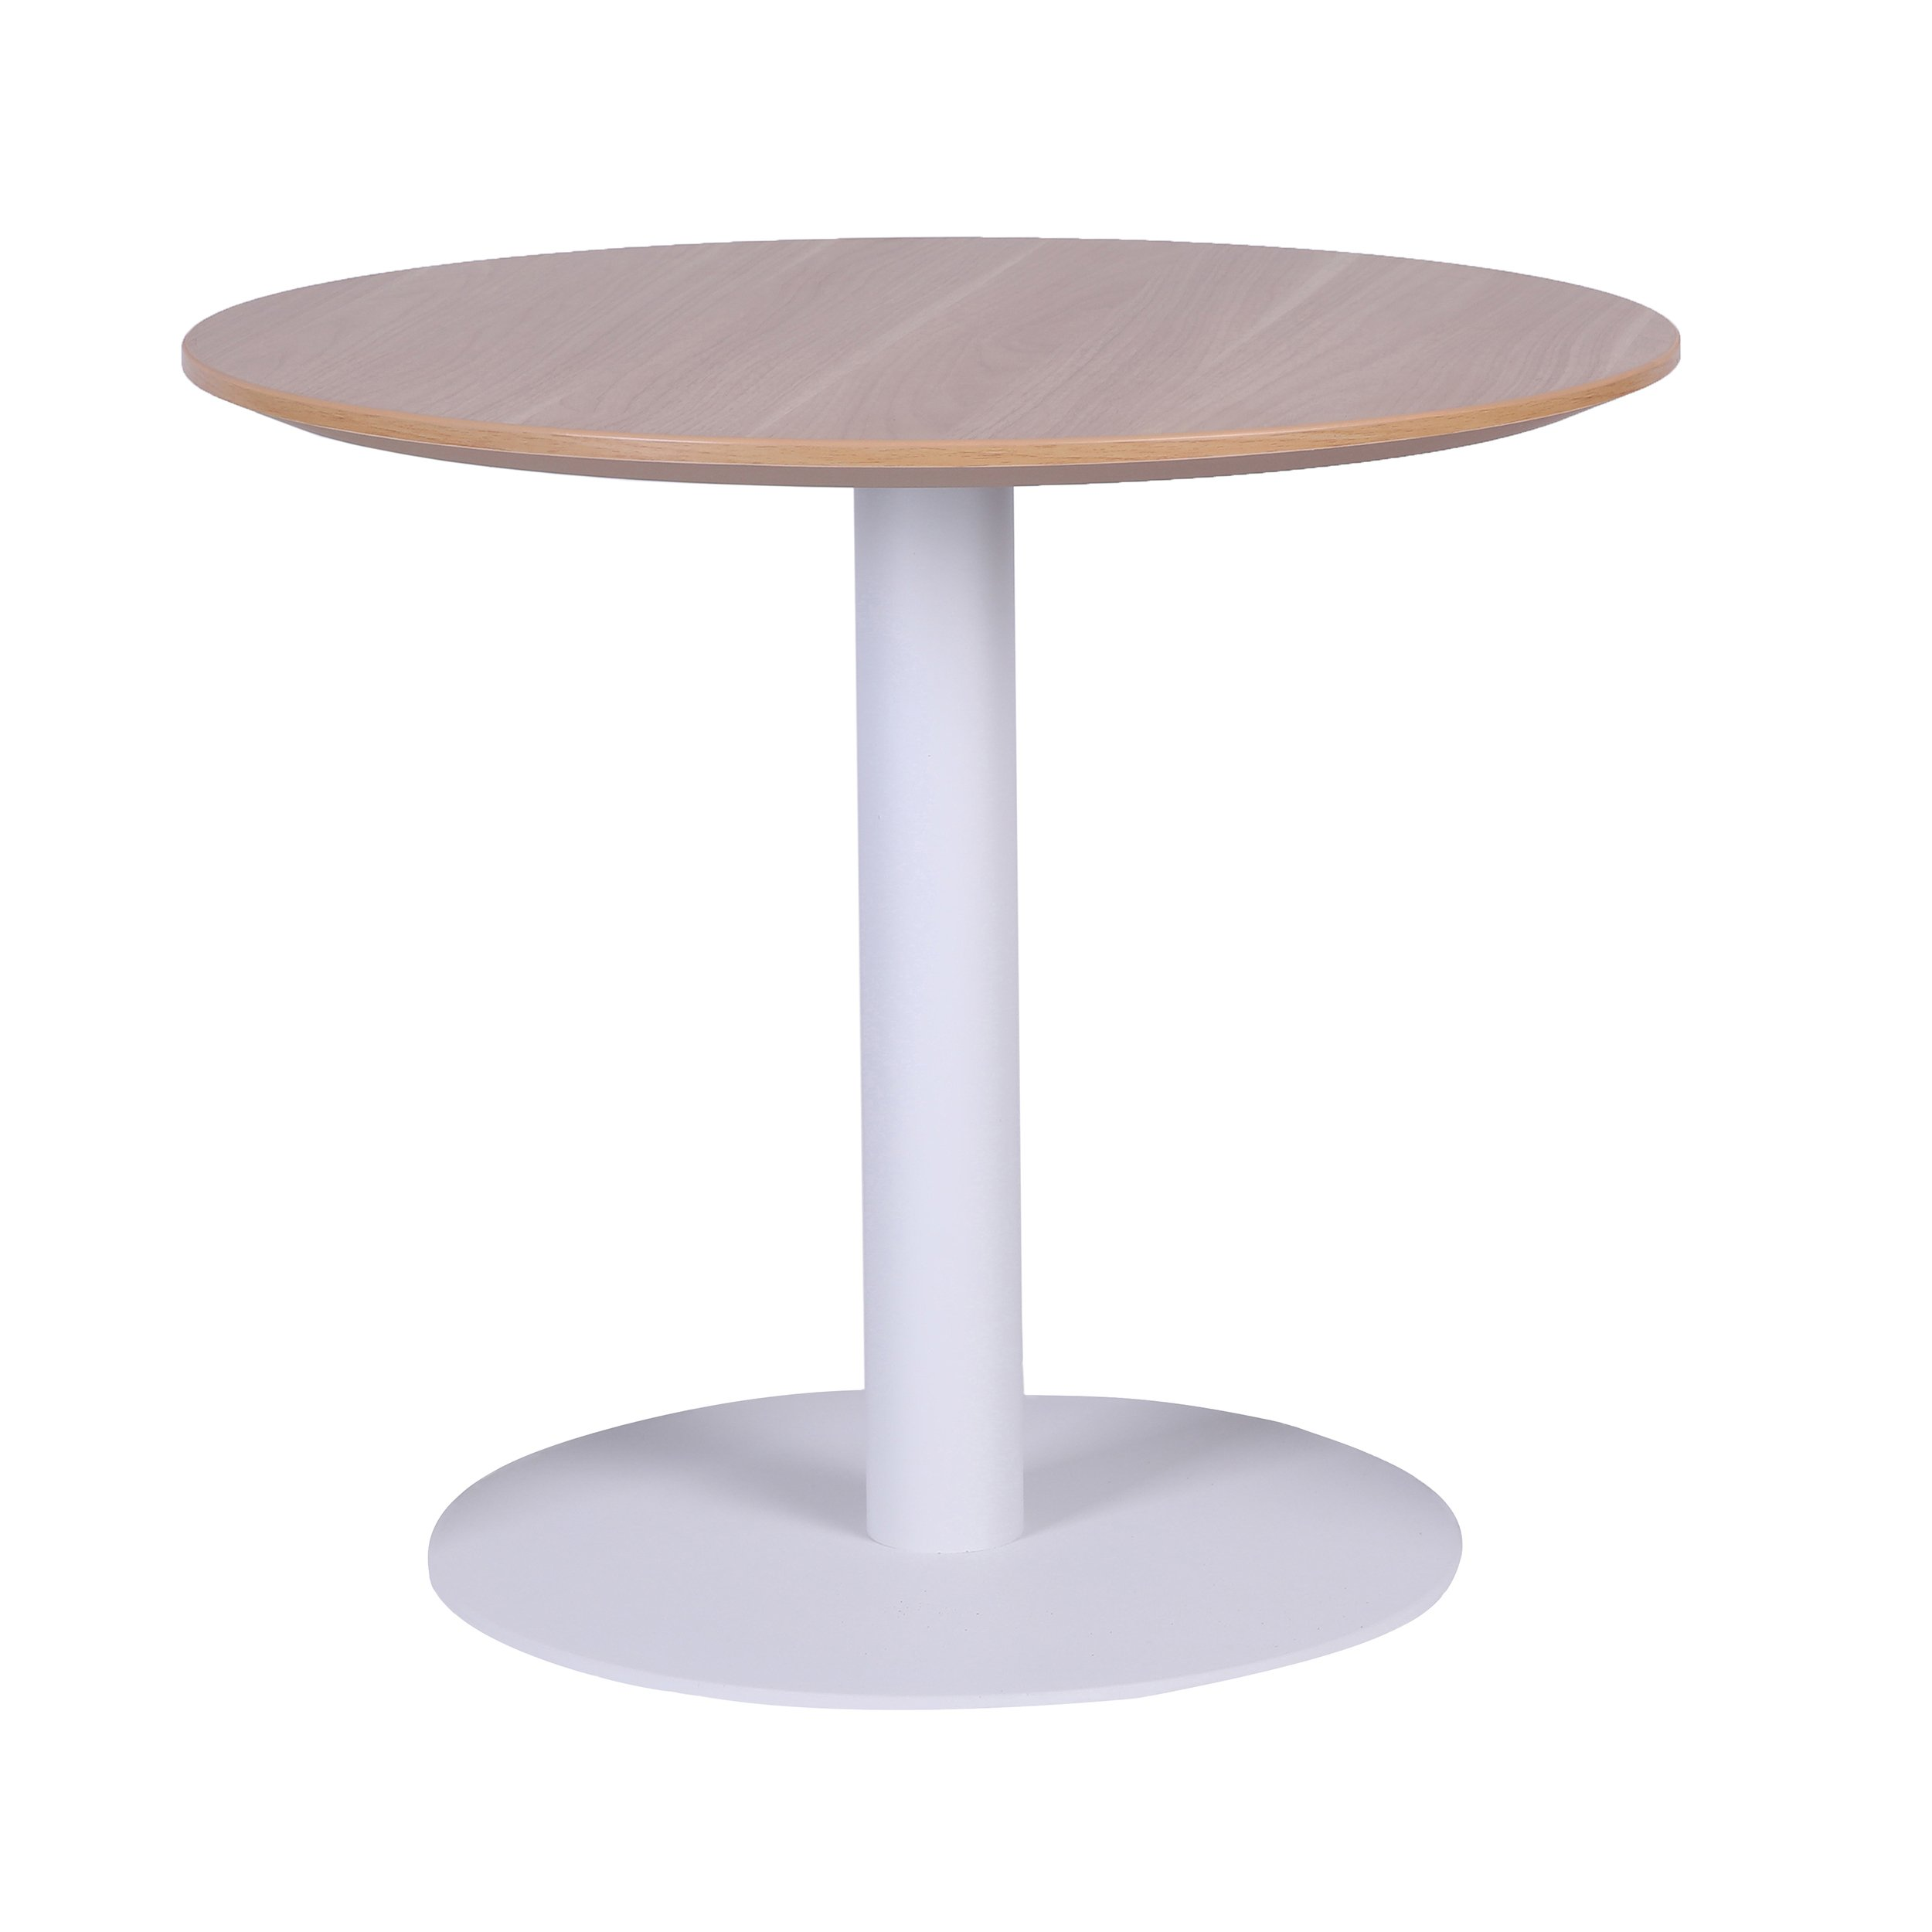 on living round pedestal tables beautiful cool home marinus table room coffee oval furniture p